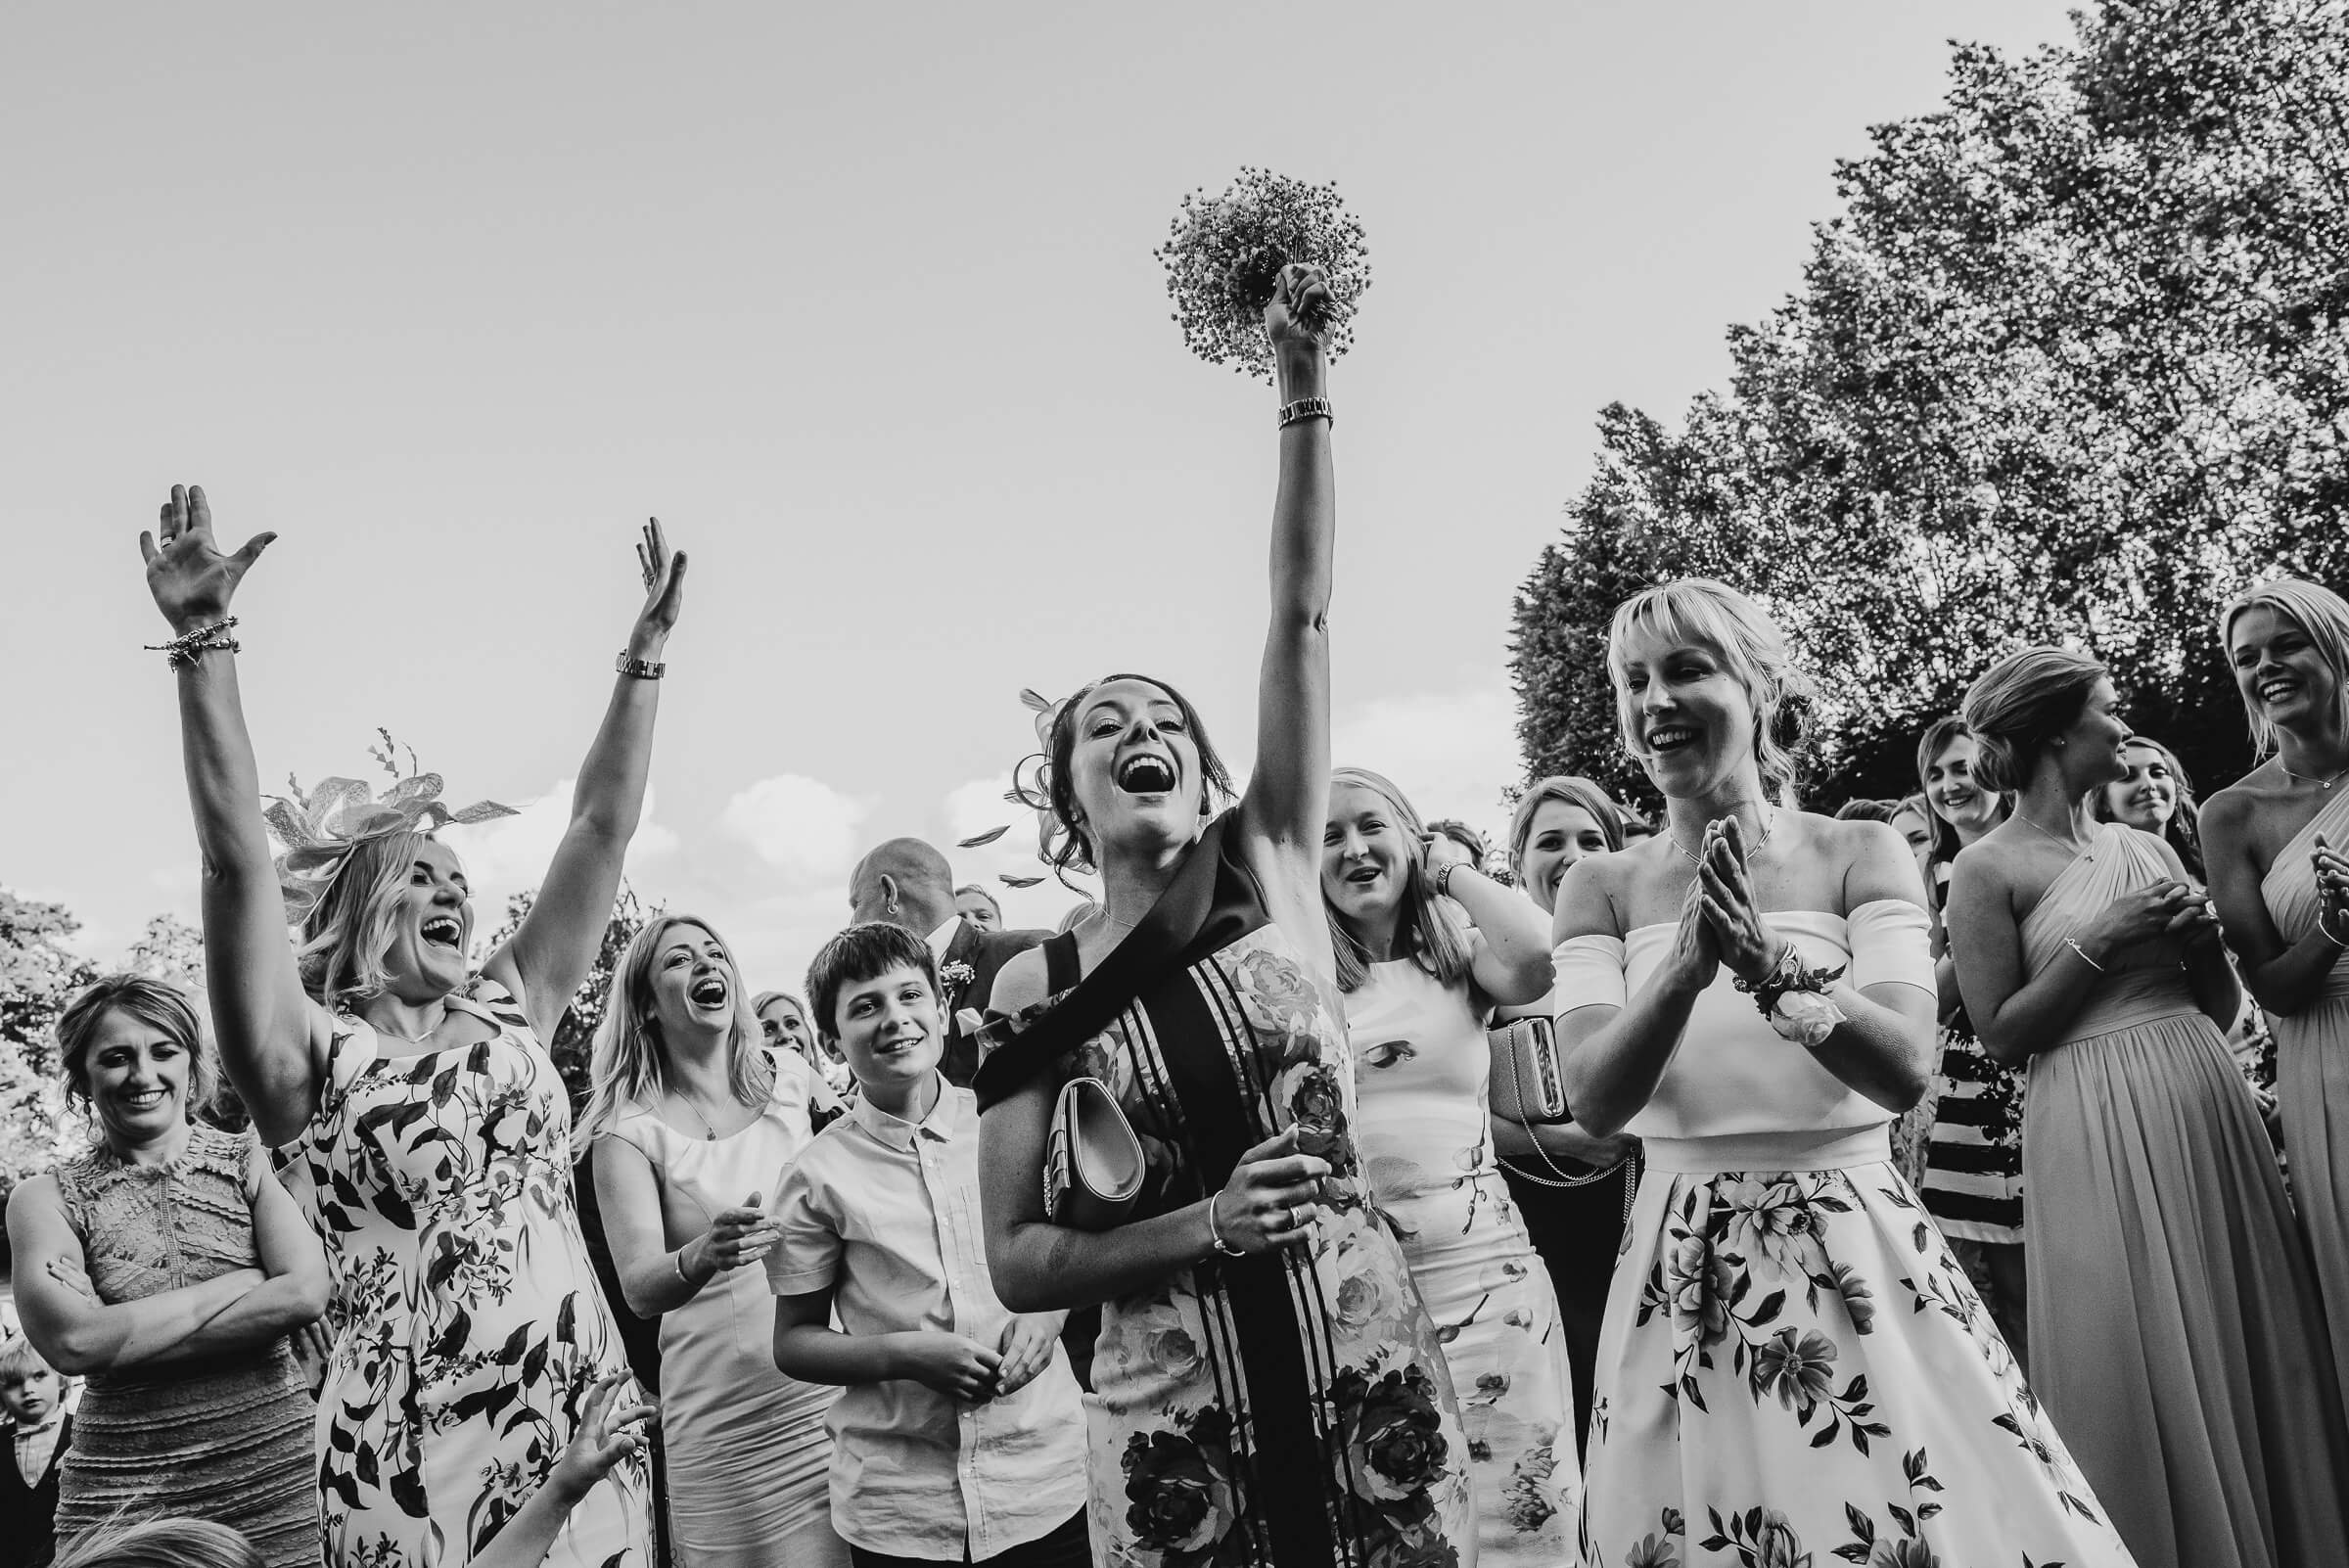 lady catching bouquet and holding it up in air